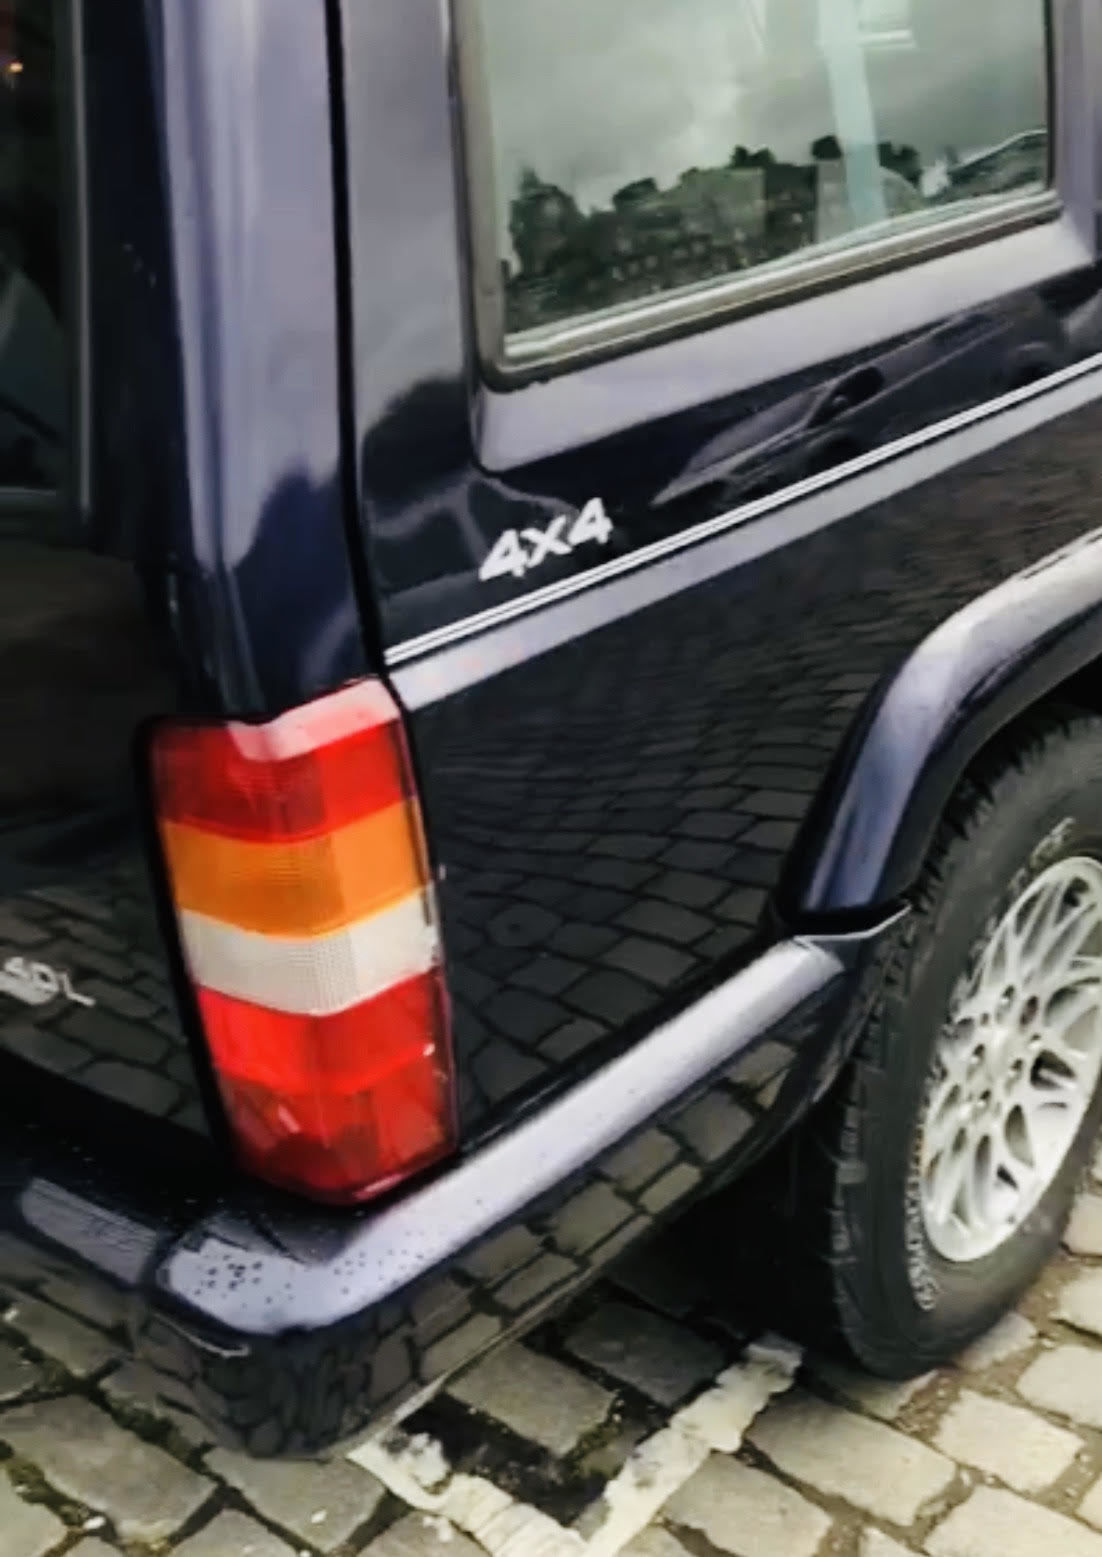 1999 Jeep cherokee, low mileage, full service history For Sale (picture 2 of 4)